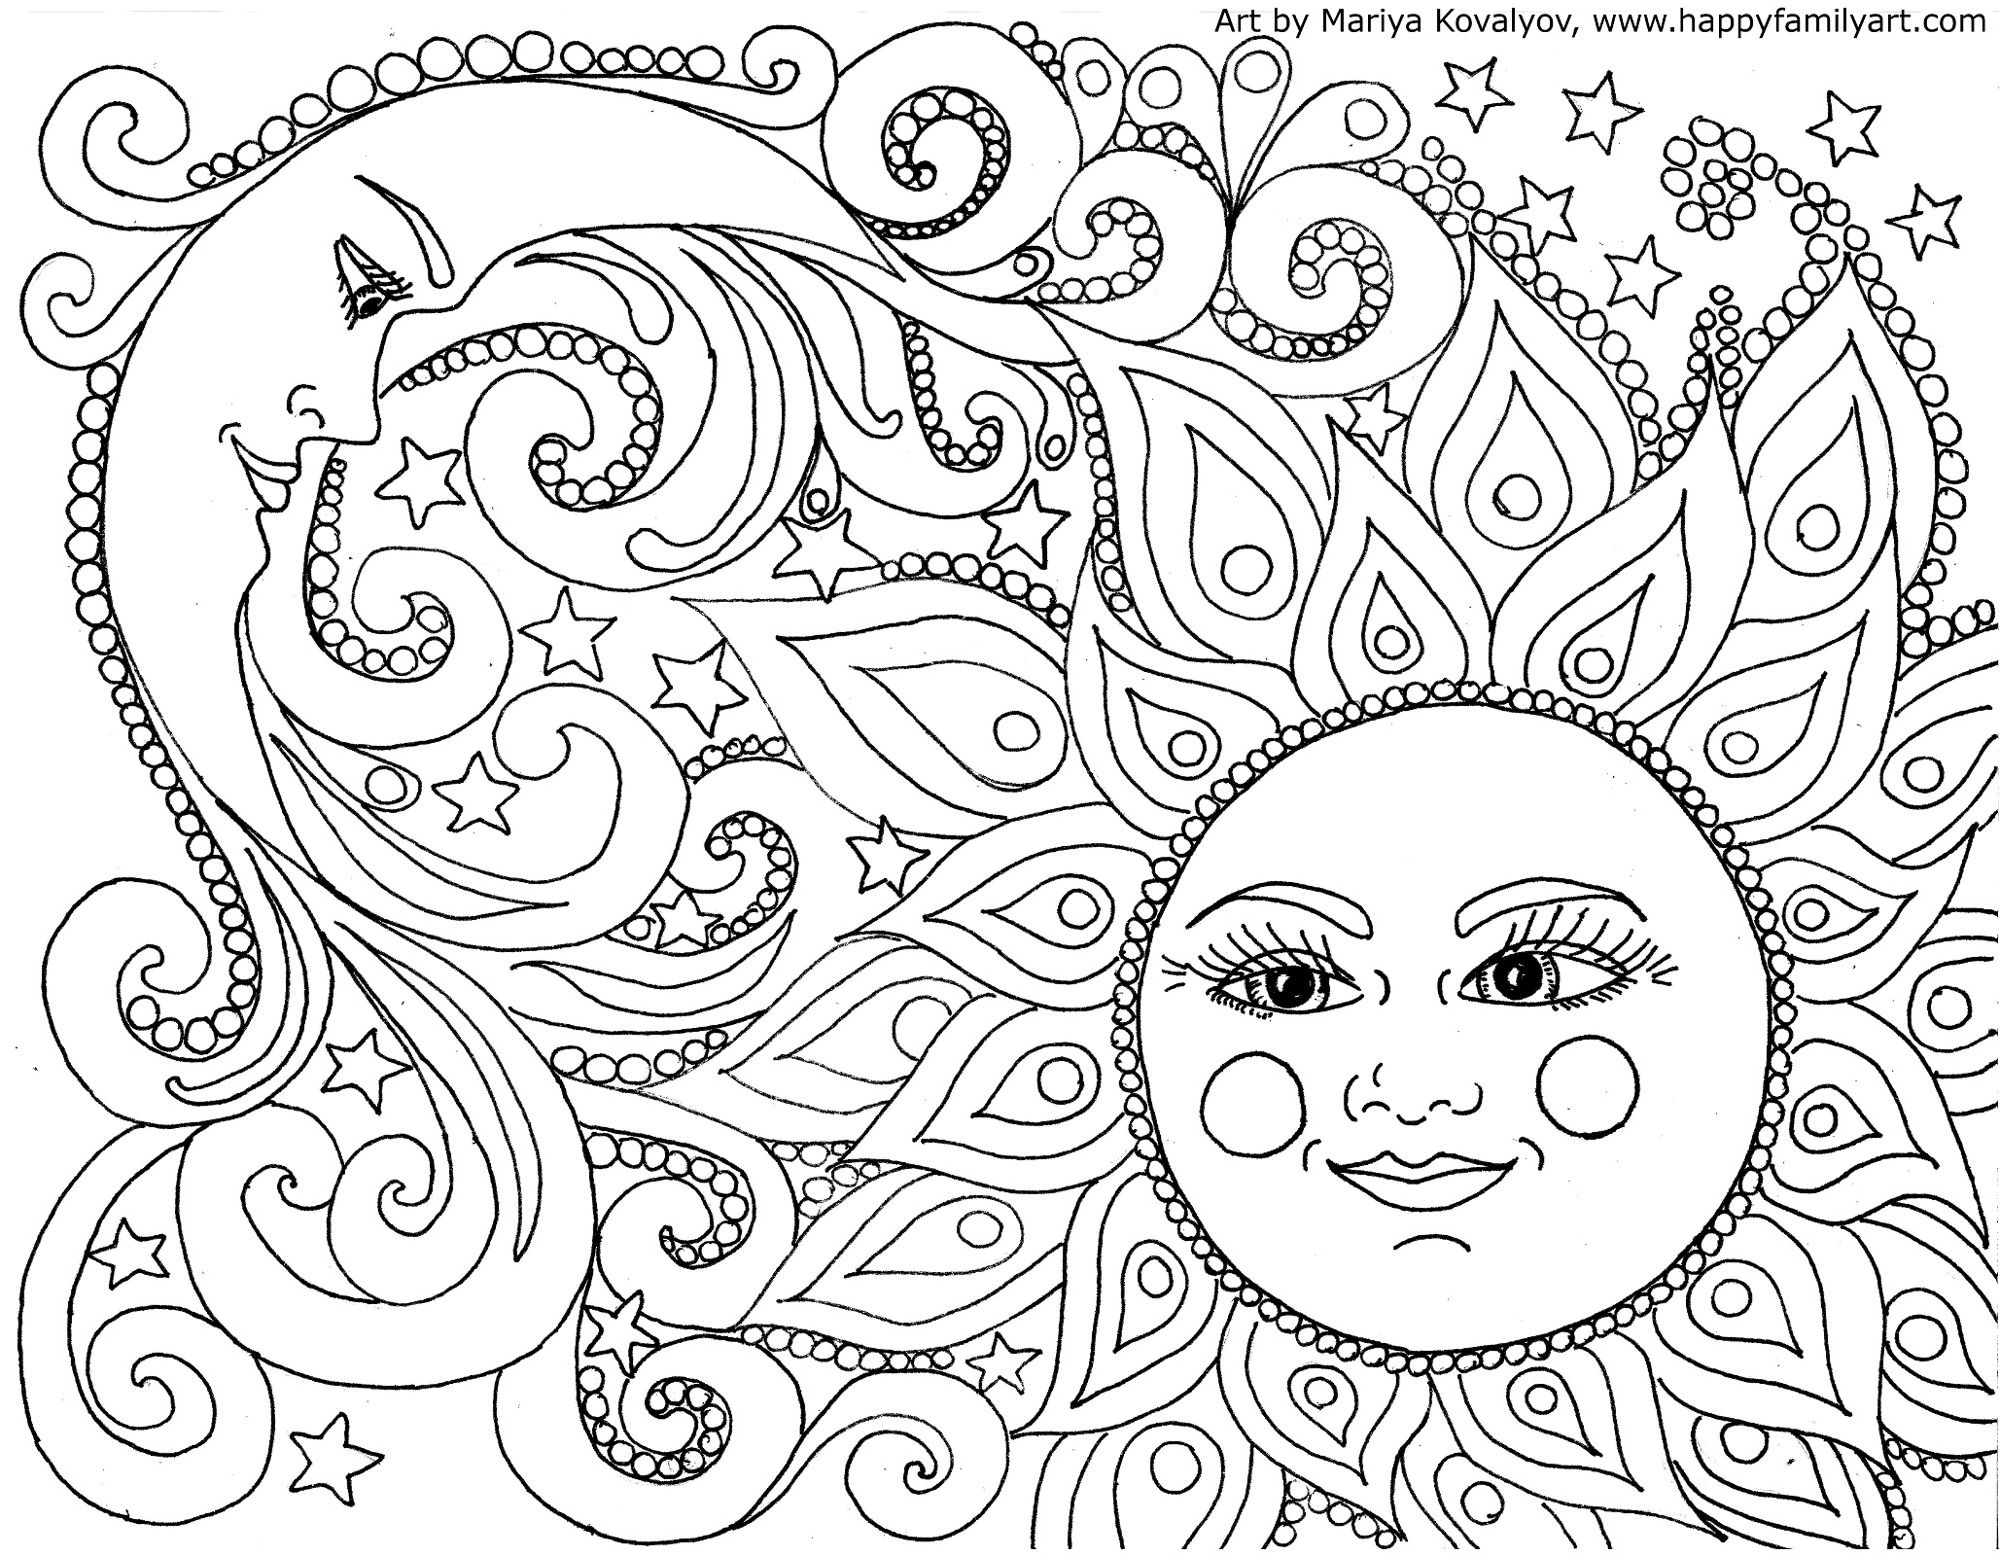 Long e coloring pages - Sun And Moon Coloring Pages Adult